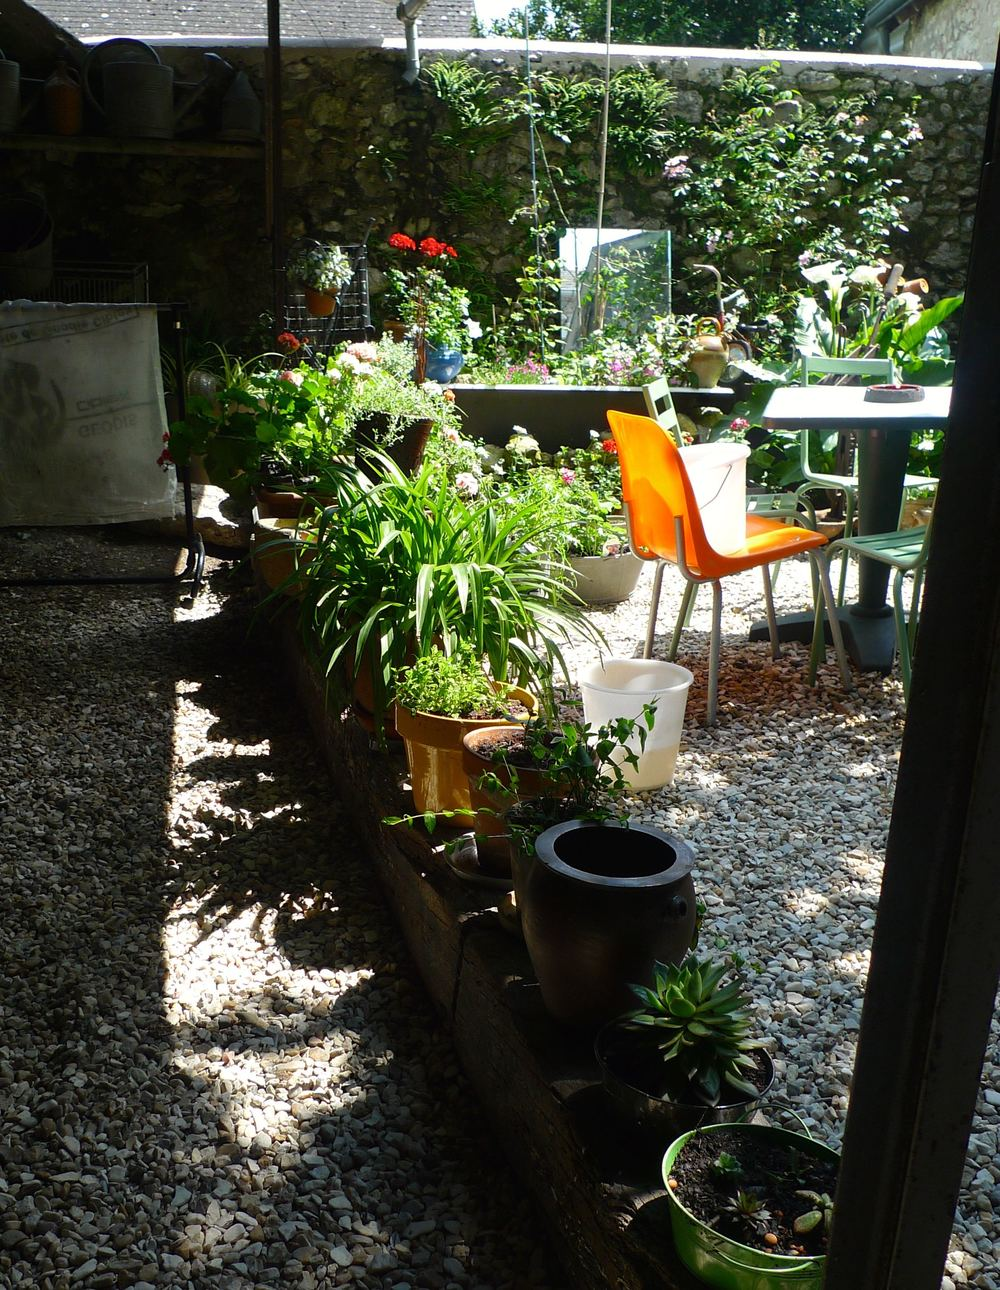 The courtyard garden